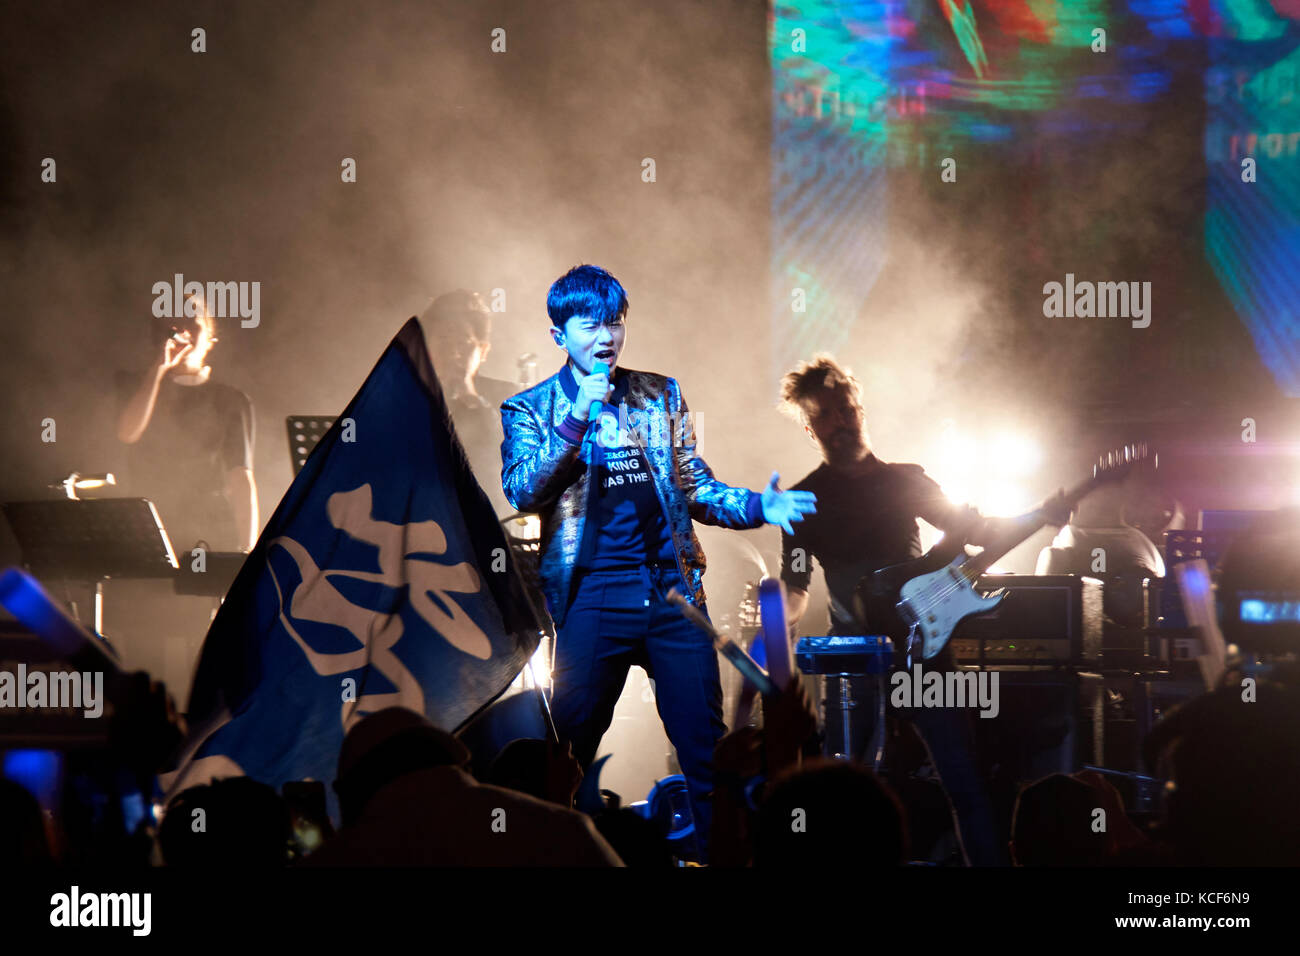 London, UK, 4th October, 2017. Zhang Jie concert at the O2 Indigo as part of the Sound of My Heart World Tour. Credit: Calvin Tan/Alamy Live News Stock Photo